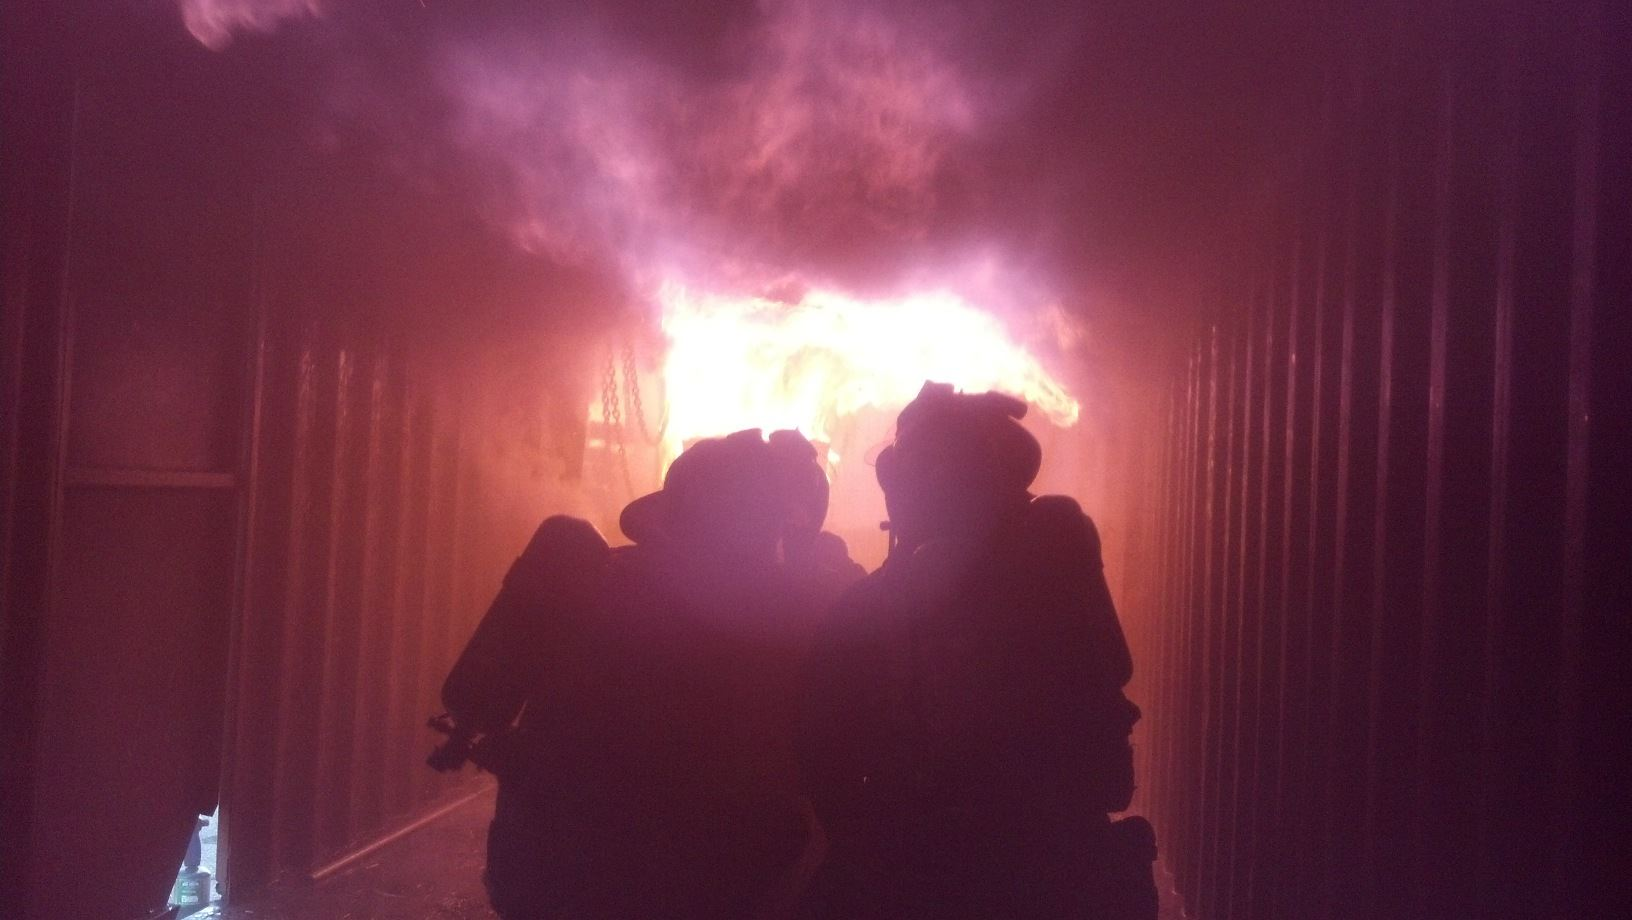 Two firefighters silhouetted against a raging fire.